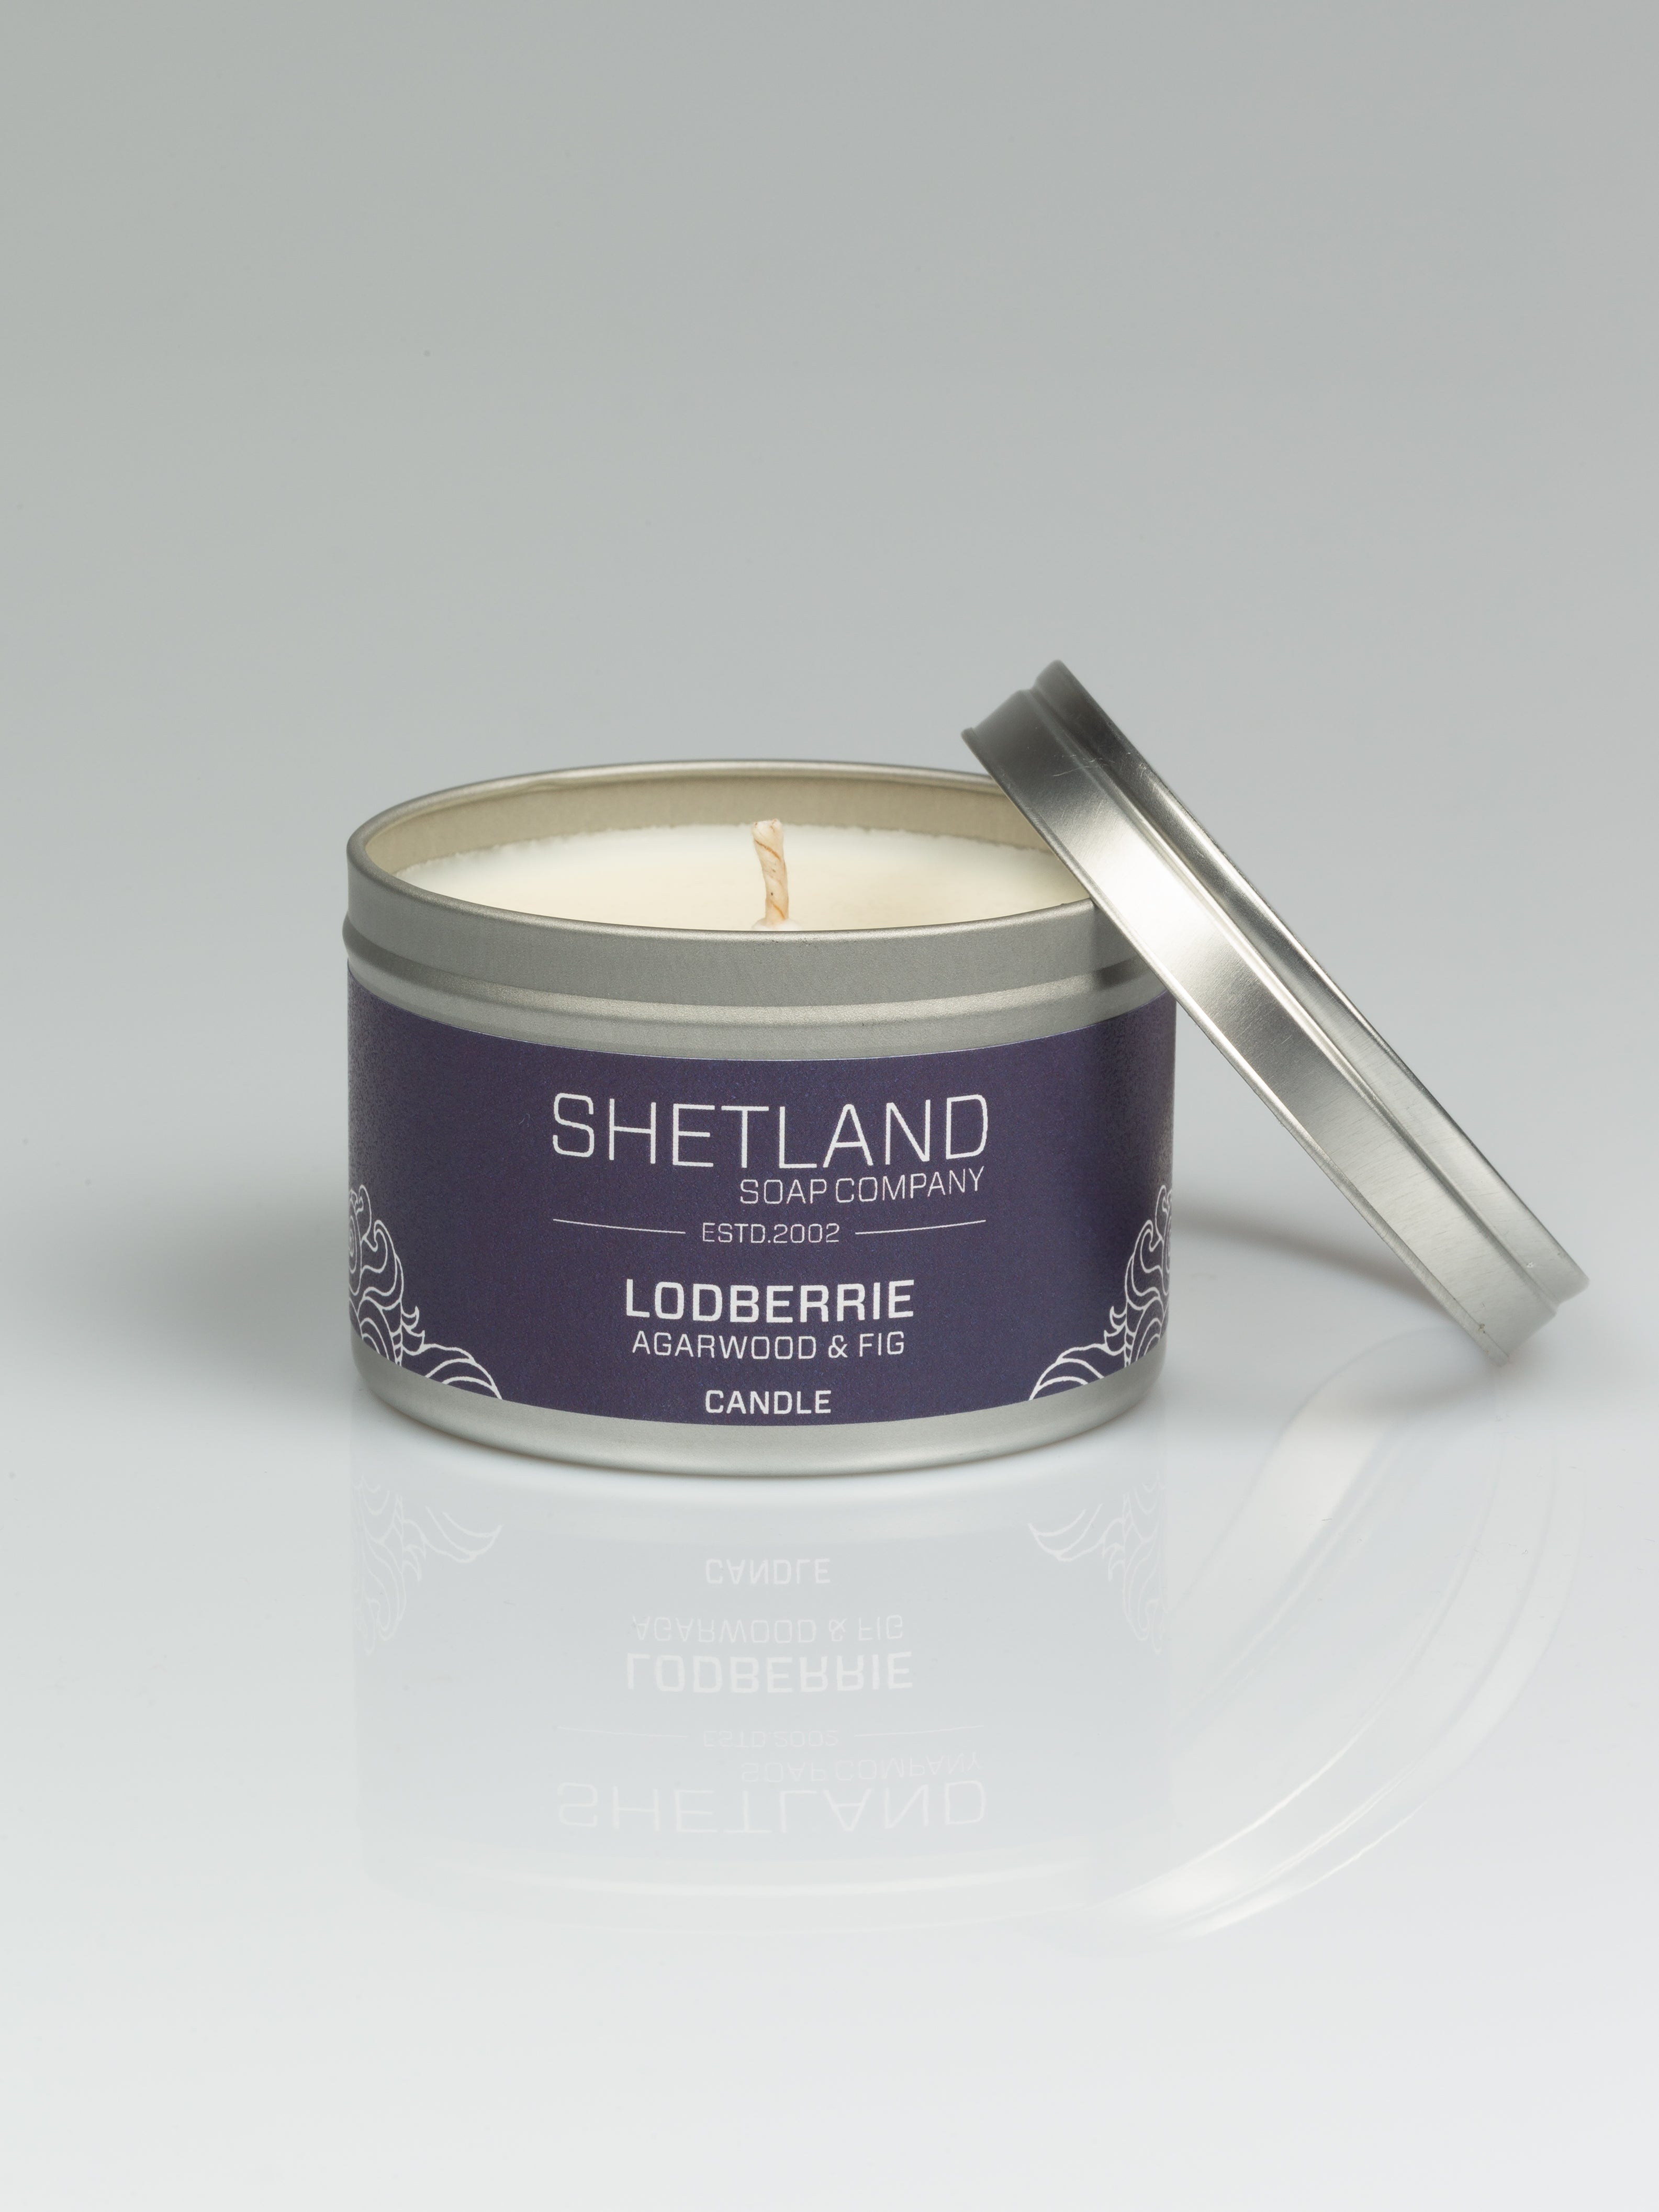 LODBERRIE CANDLE